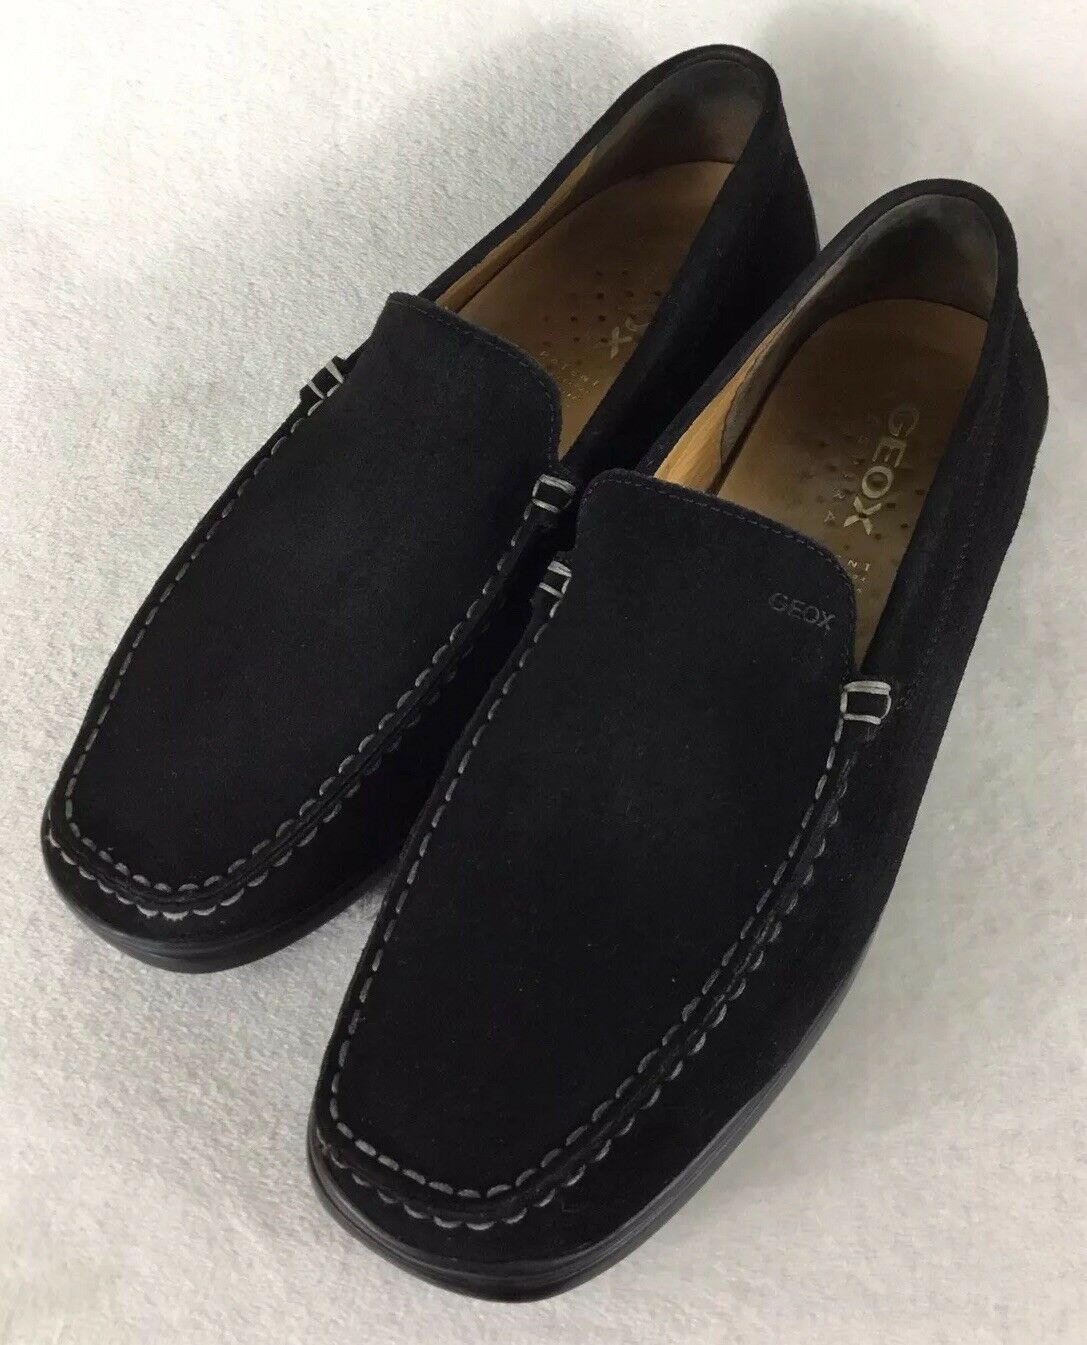 GEOX Respira Suede Leather Loafers Slip On Driving Moccasin Sz   12.5 US